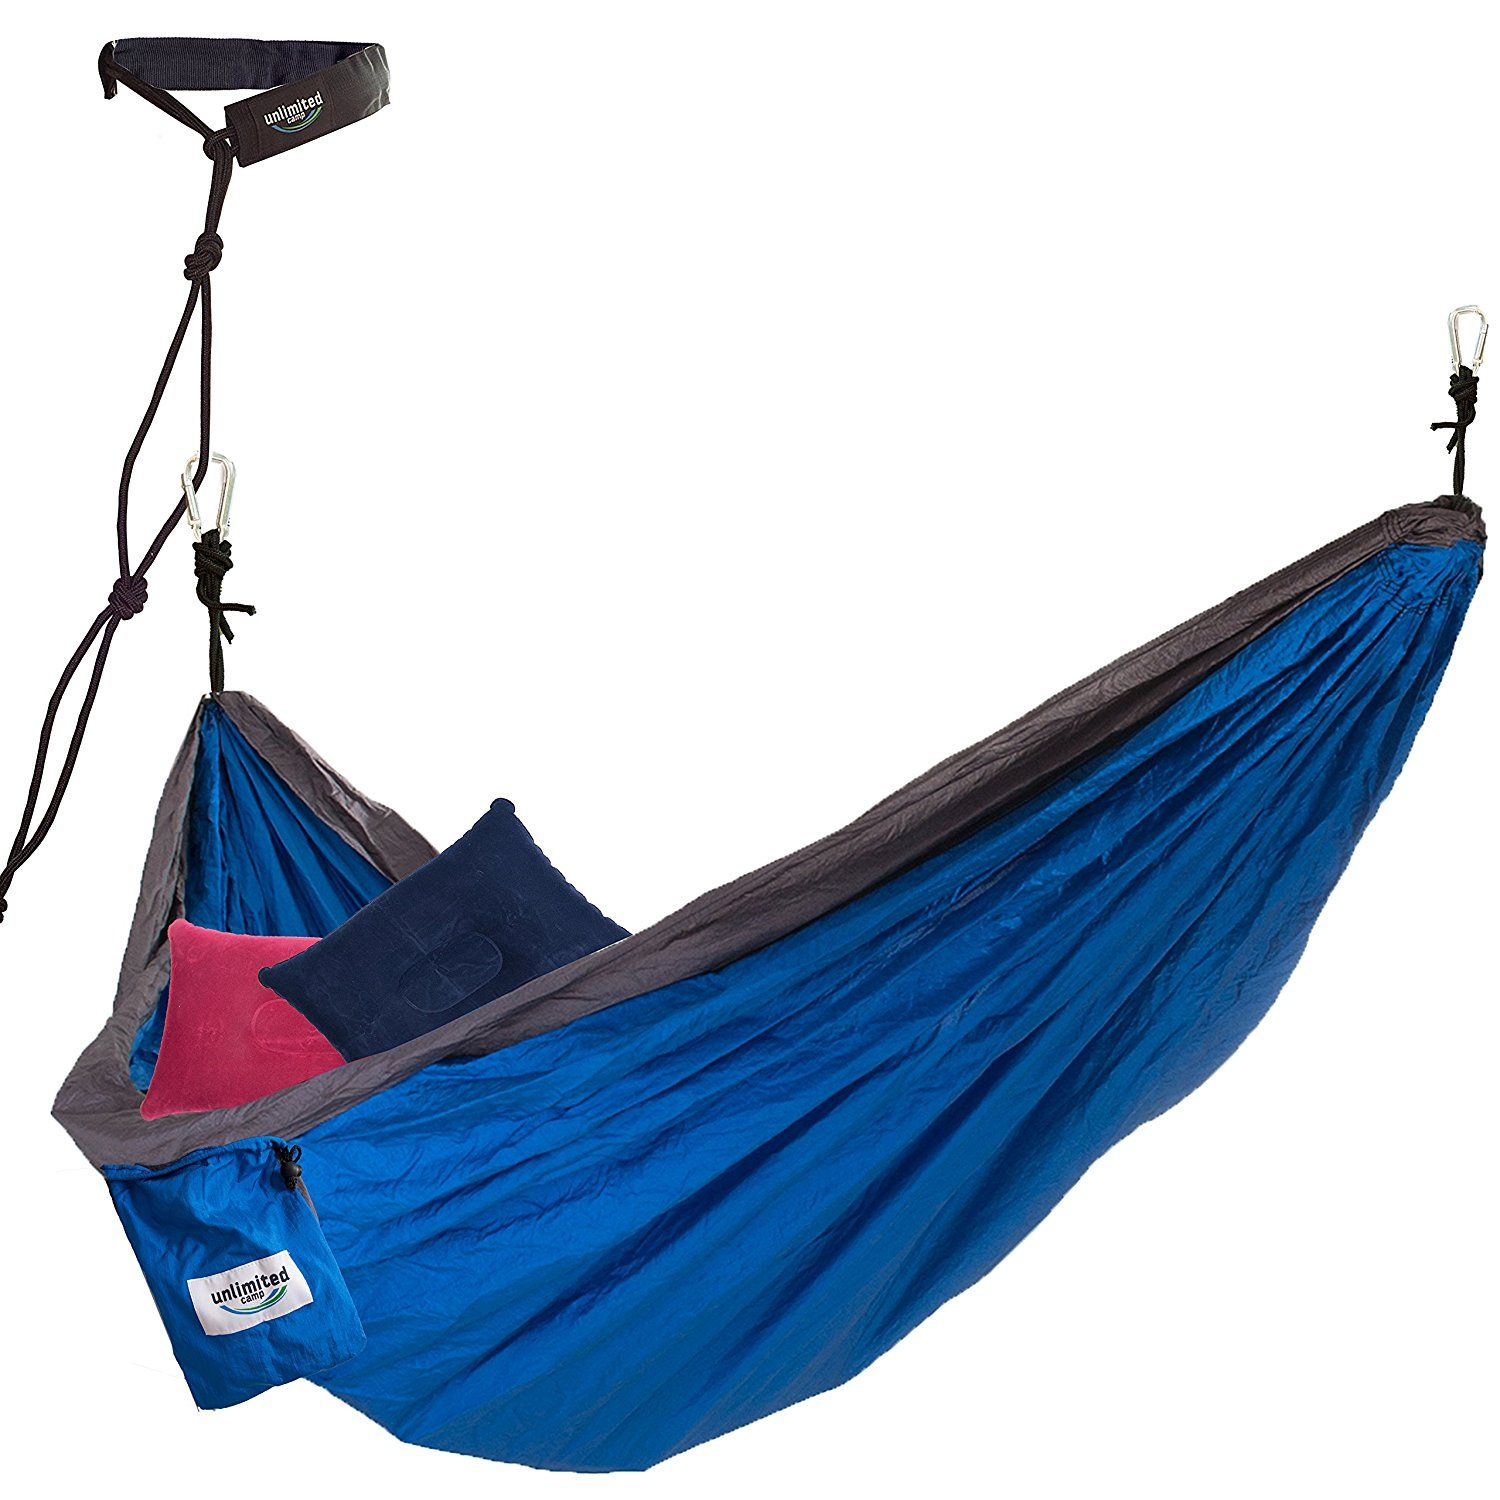 adventure two gear hang of hammocks the sunda person review hammock getting lists